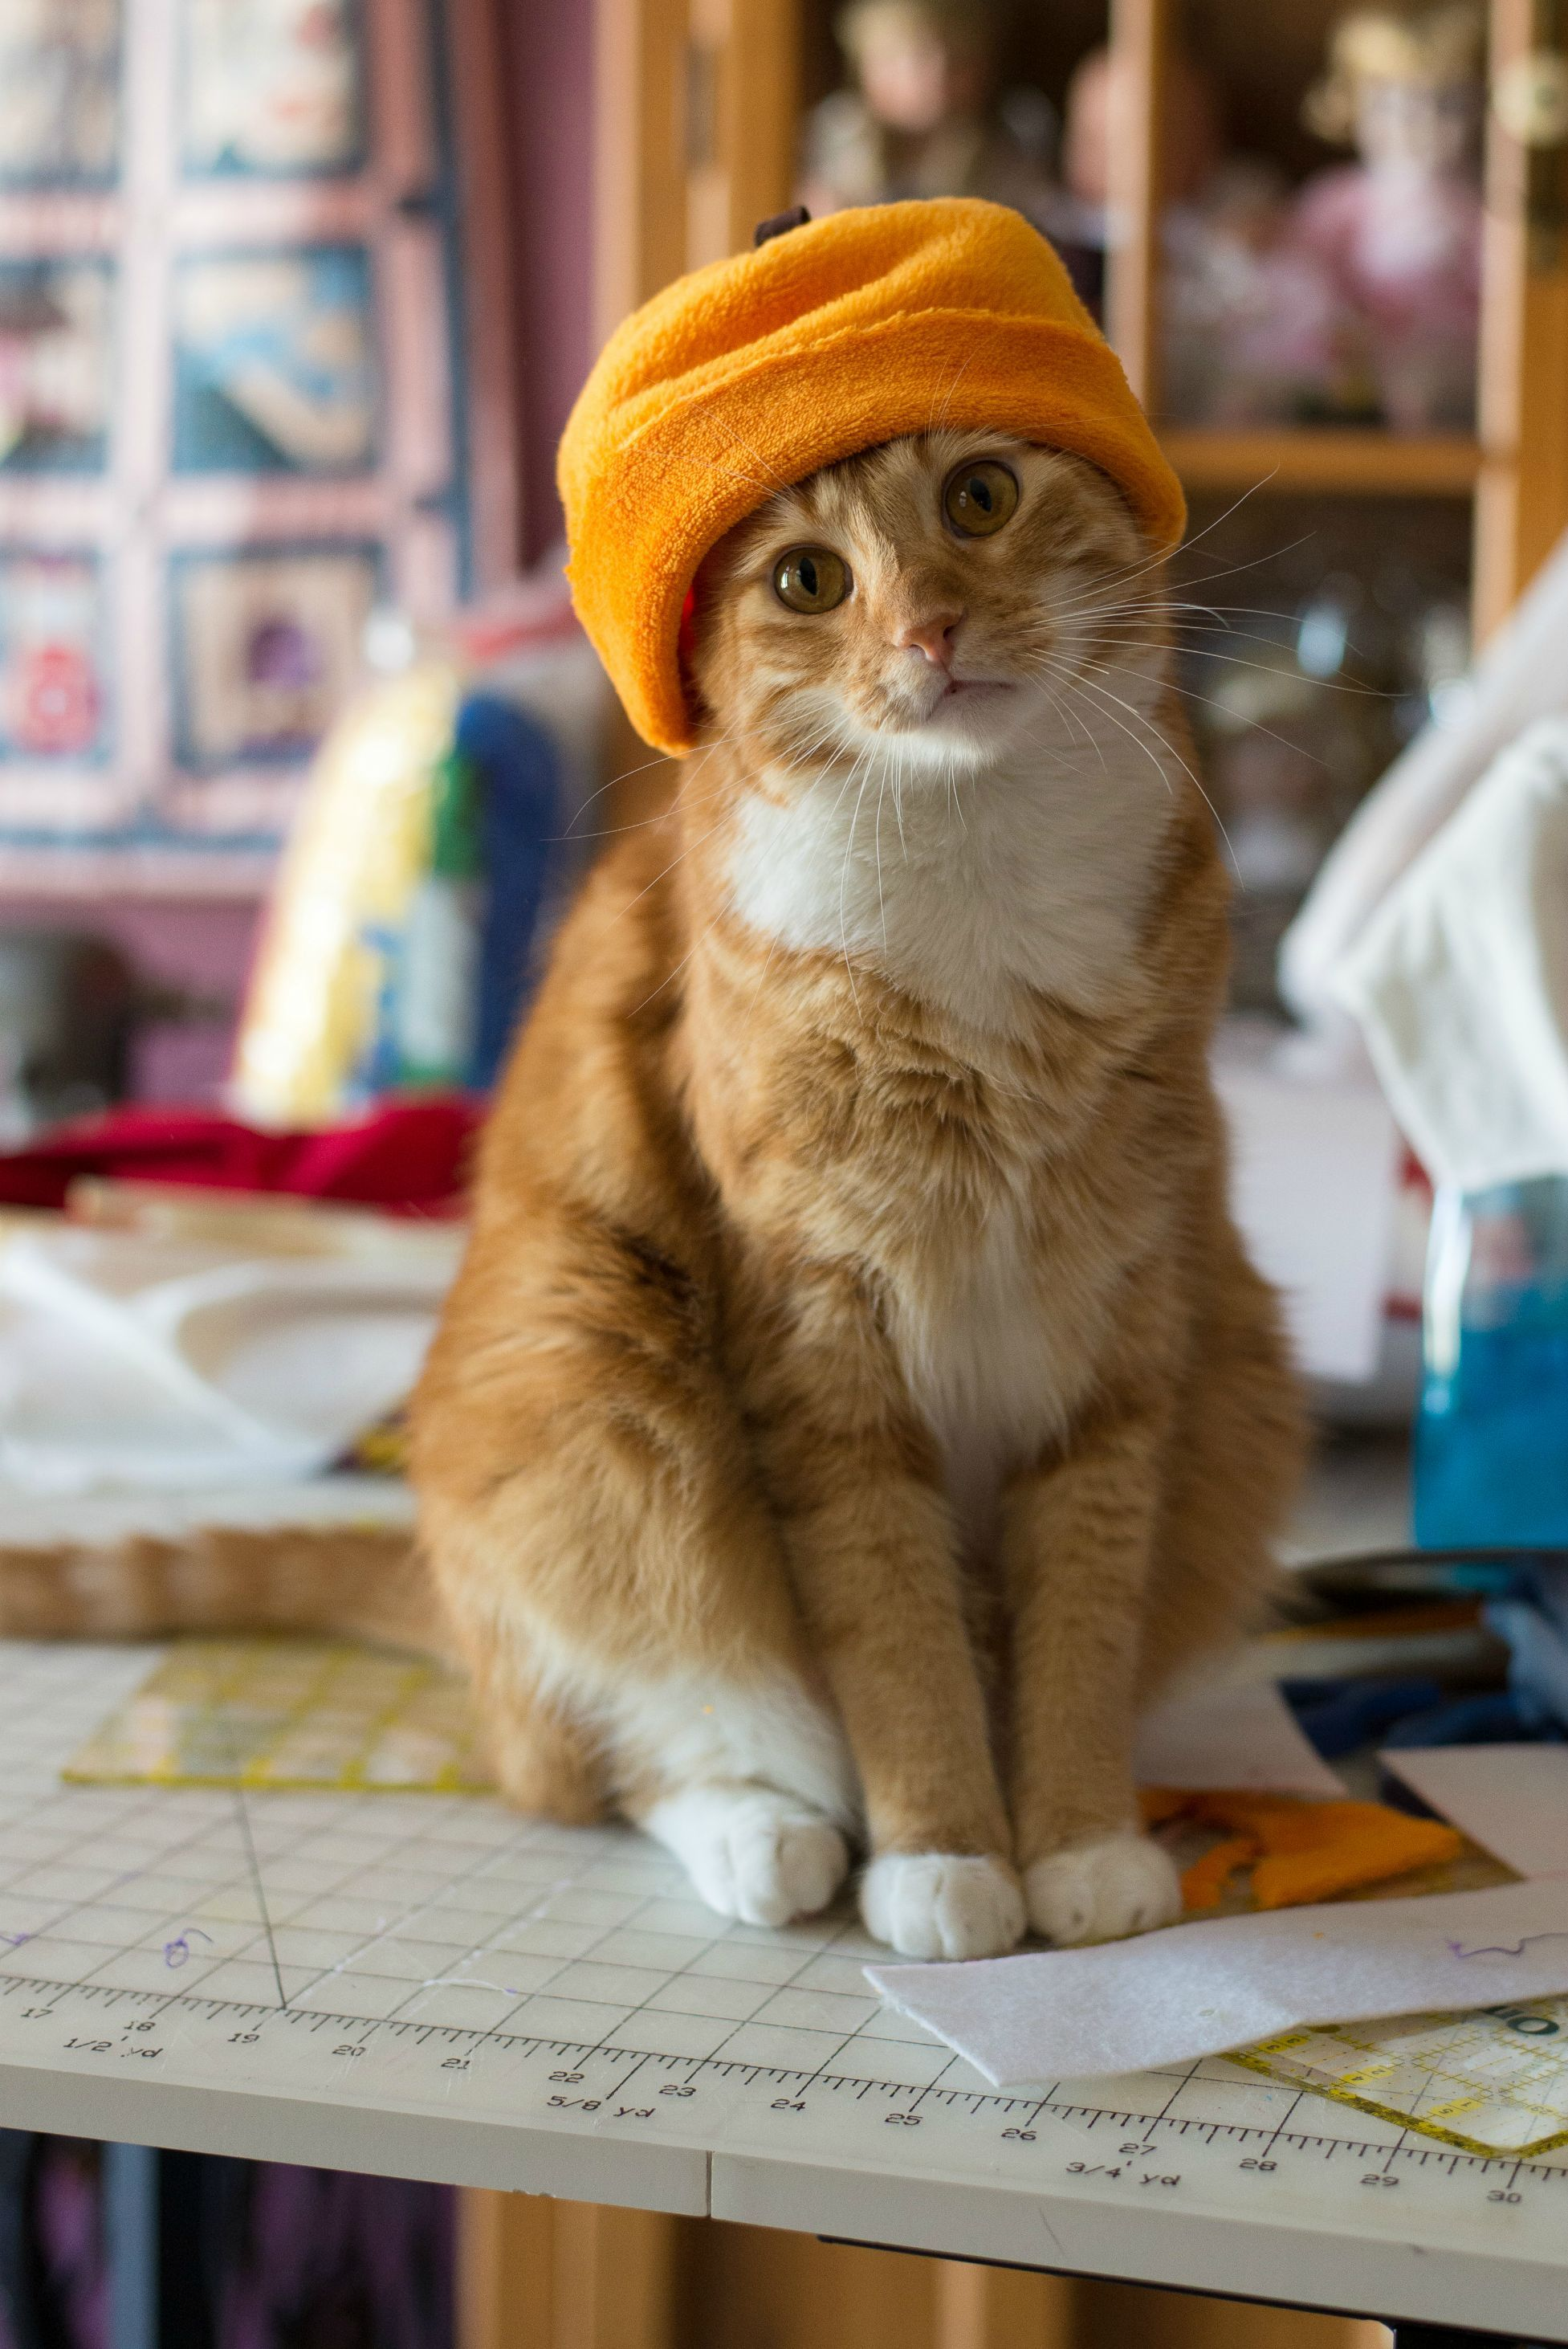 We put an orange hat on Sam for October. He looked a little less sassy than usual. - Imgur